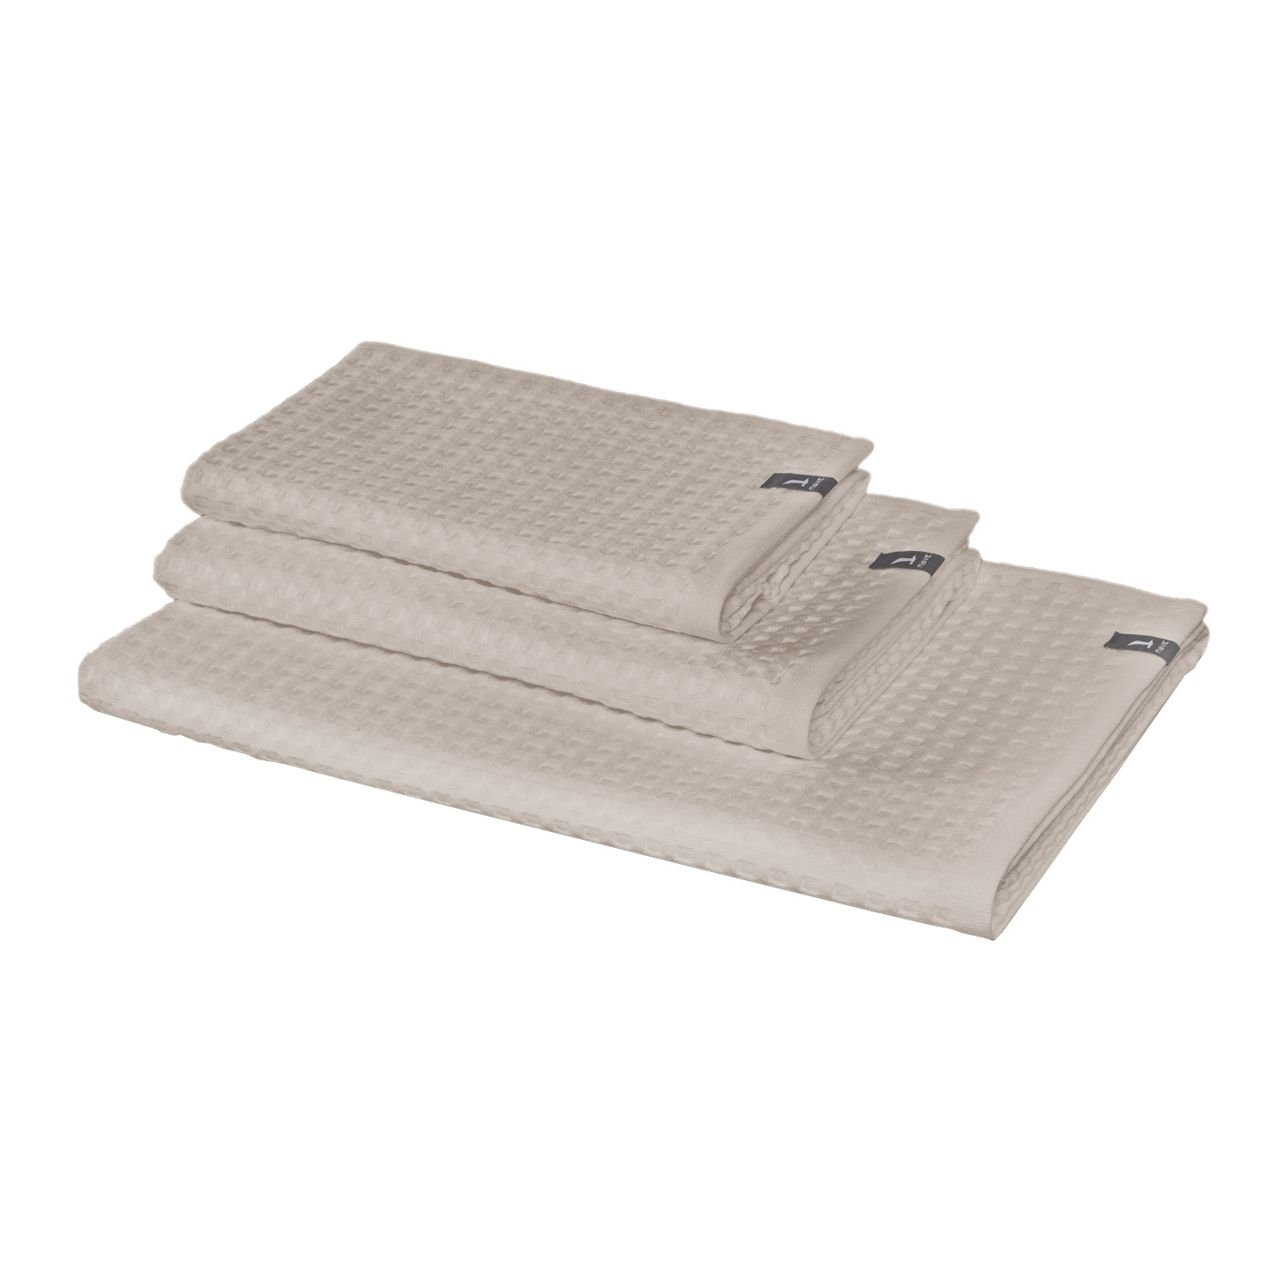 Waffle piquee towel in cashmere